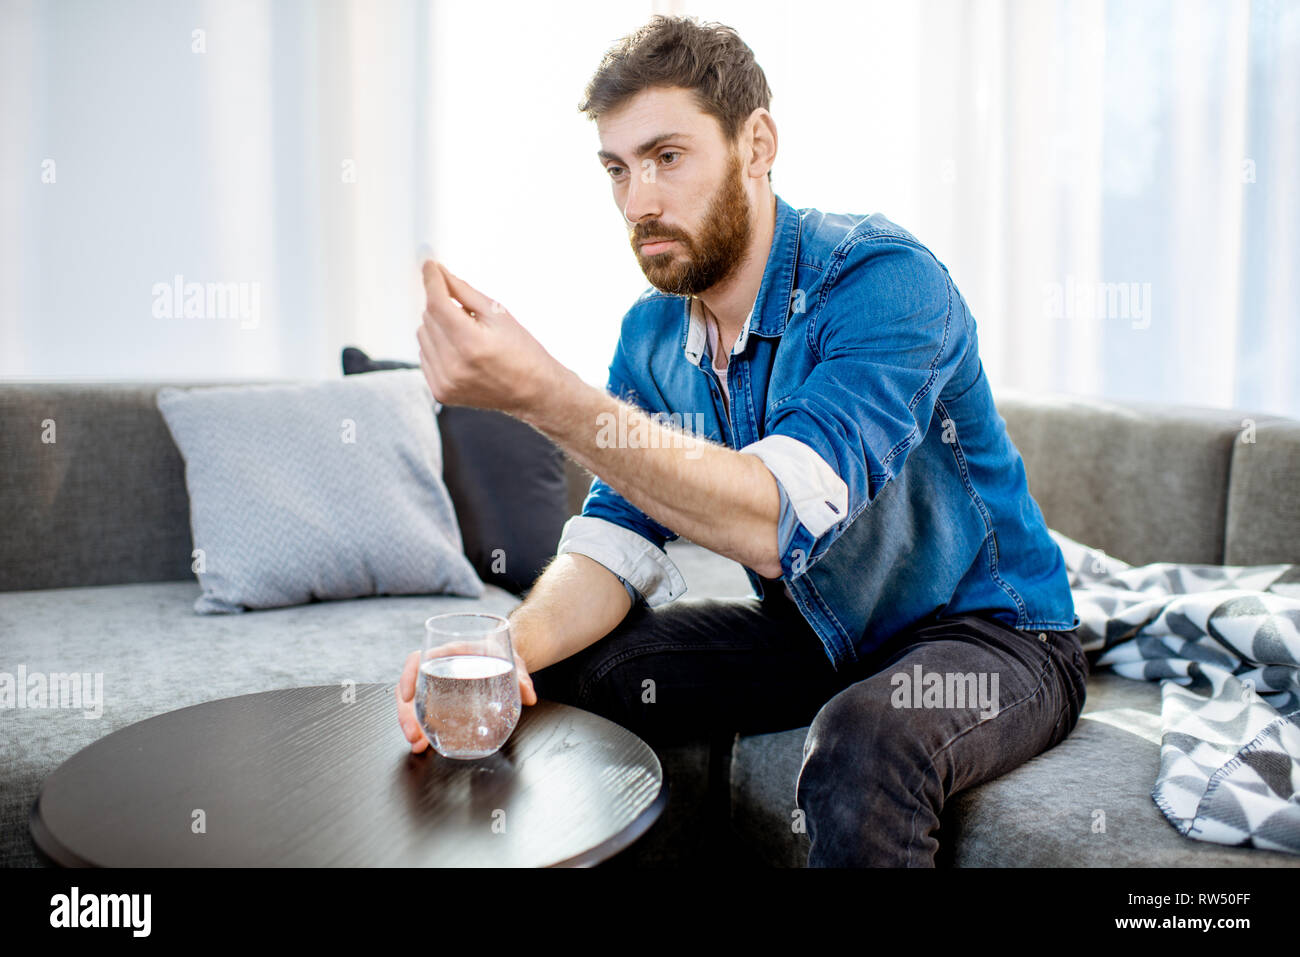 Man drinking some medicines feeling bad or having hangover after the alcohol party, sitting on the couch at home Stock Photo